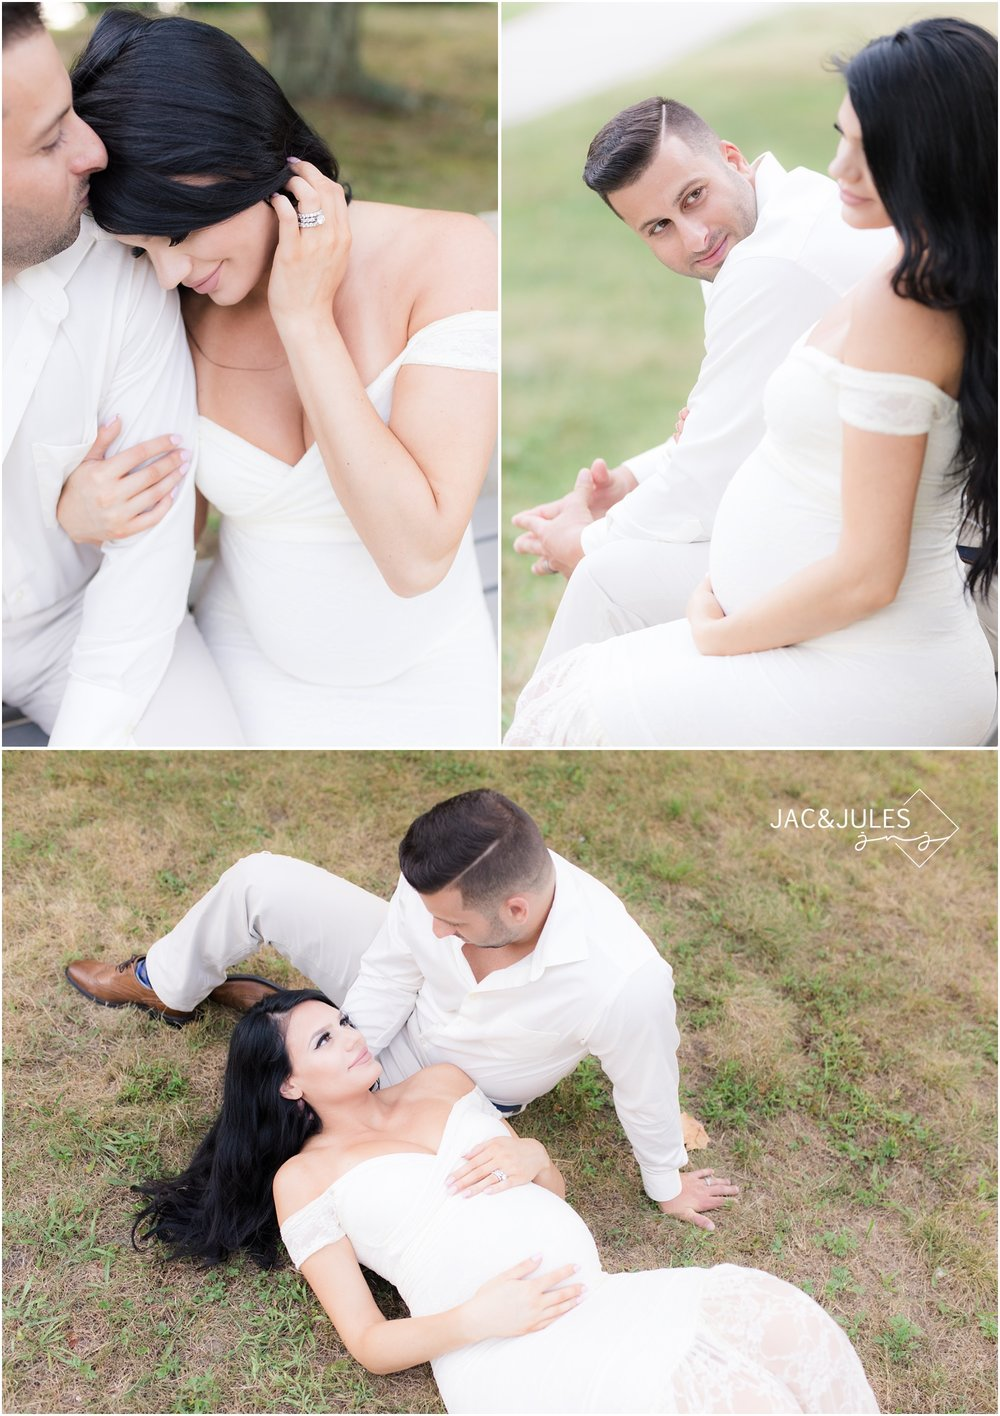 Romantic maternity photos in mermaid style white lace maternity dress